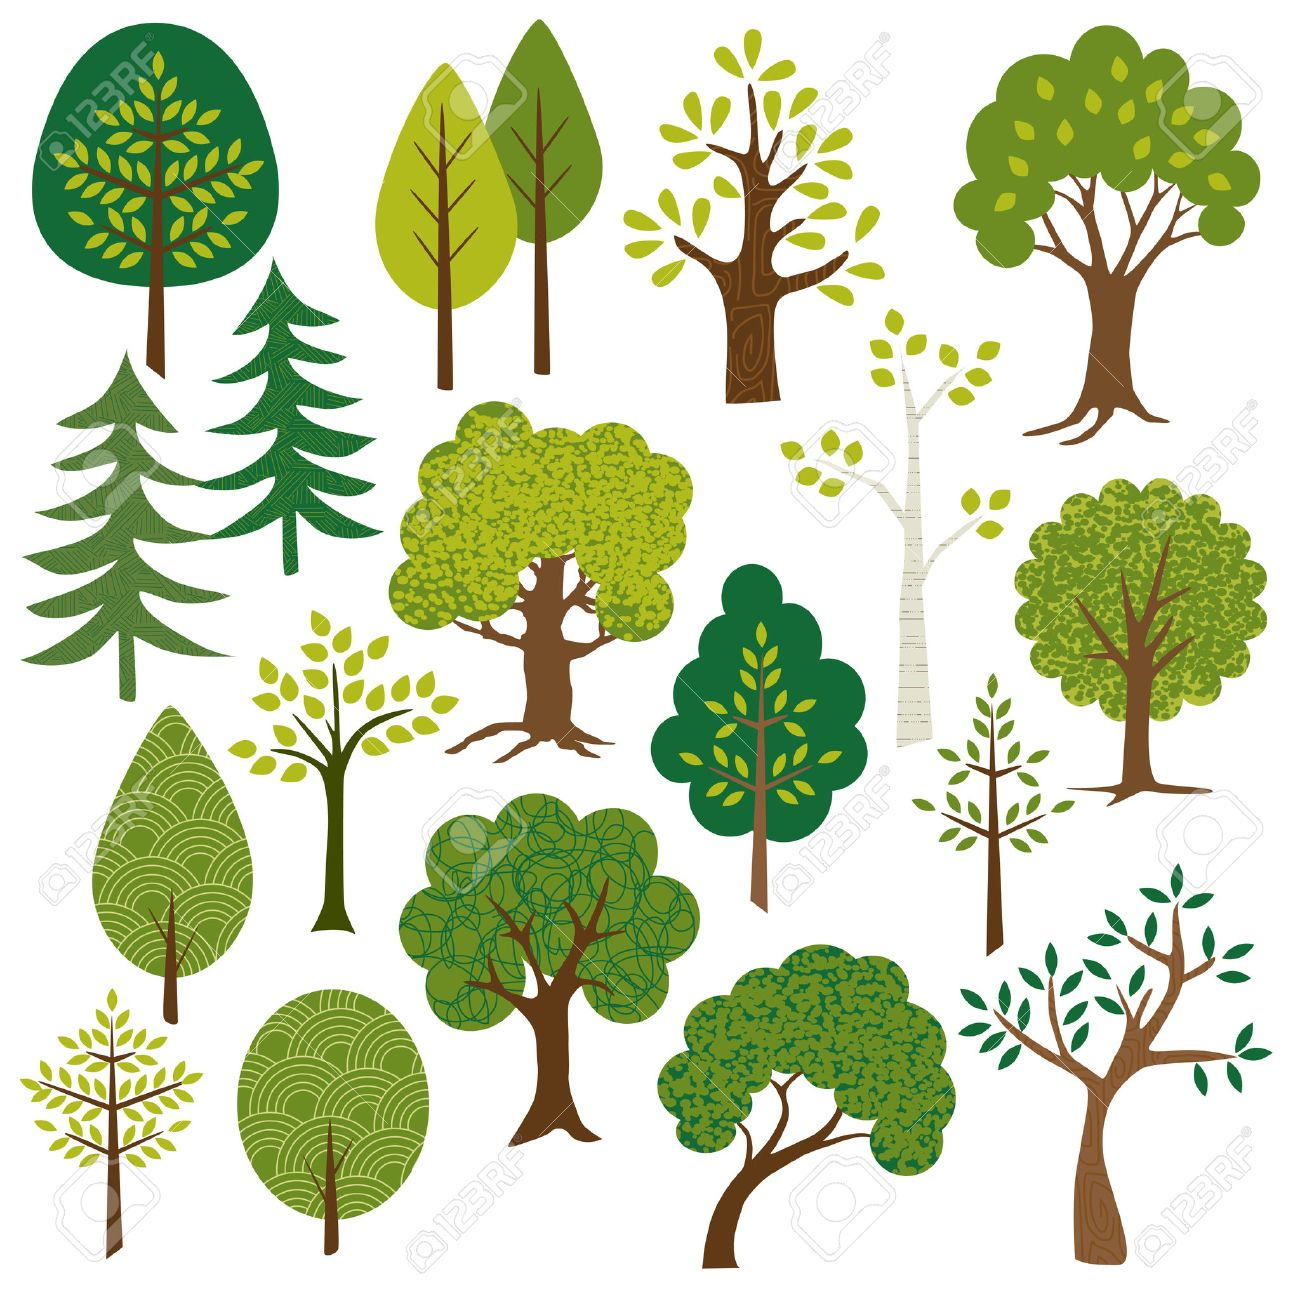 trees clipart - 35573202